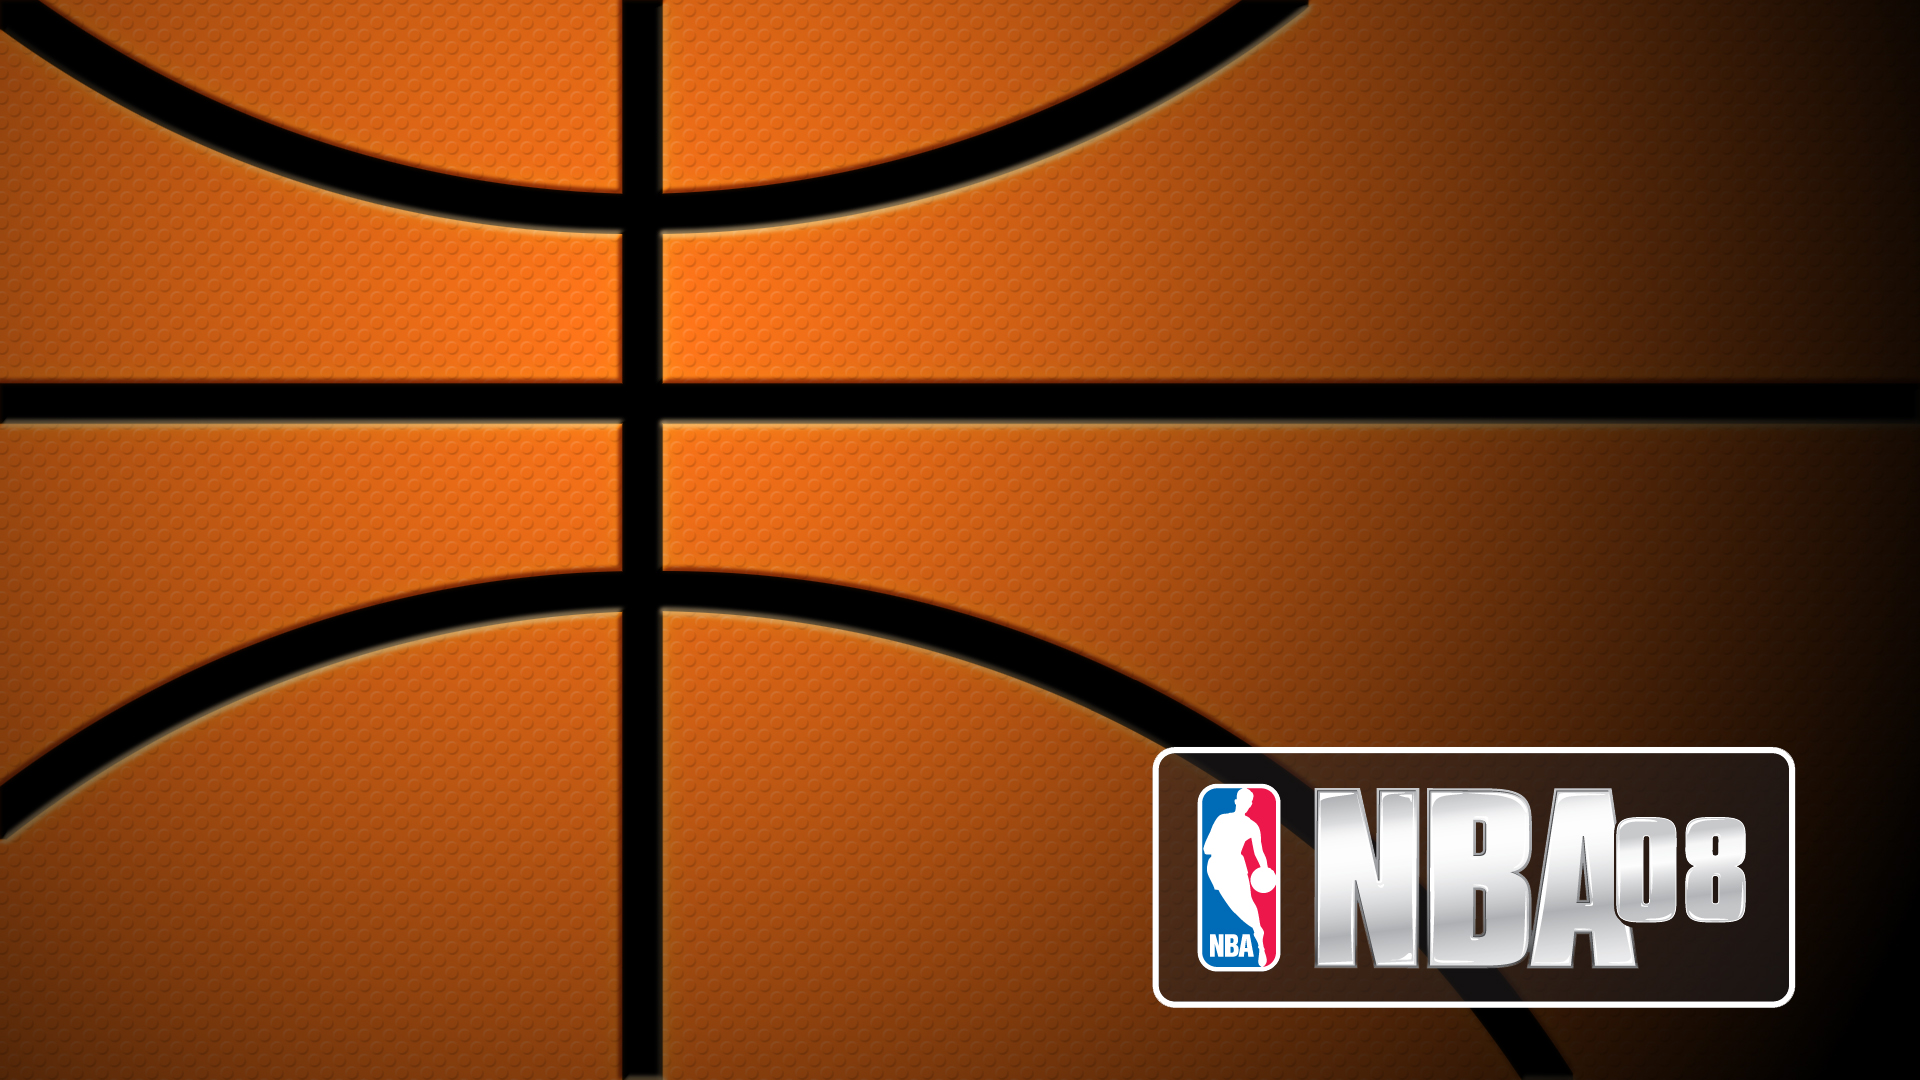 nba Full HD Wallpaper and Background | 1920x1080 | ID:475413